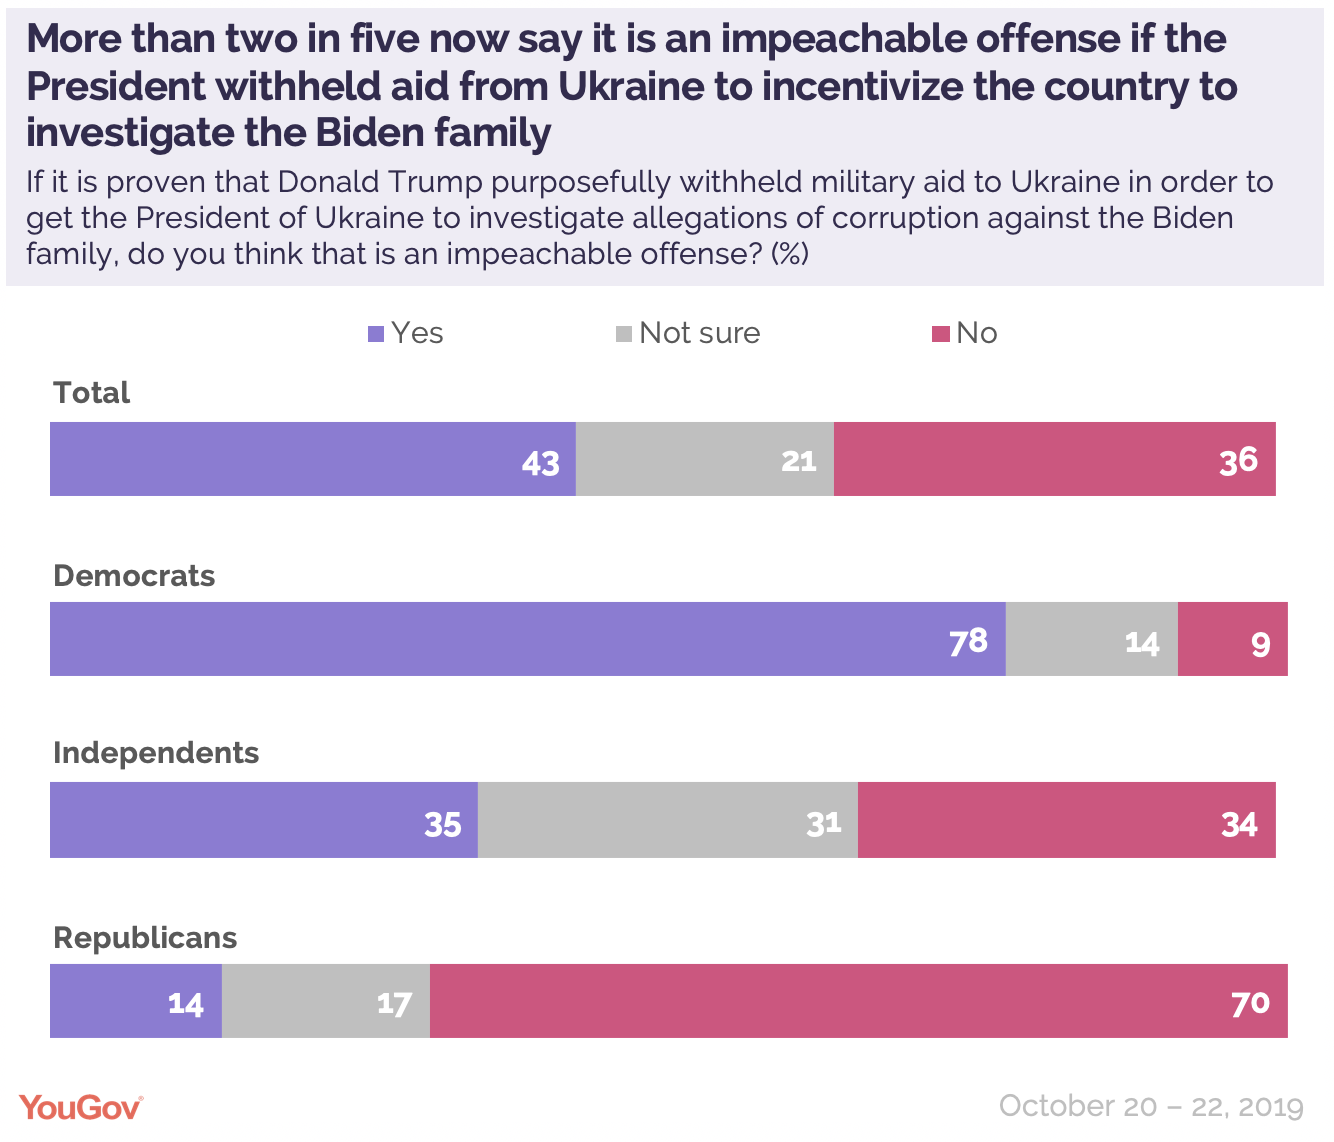 More than two in five now say it's an impeachable offense if the President withheld aid from Ukraine to incentivize the country to investigate the Biden family